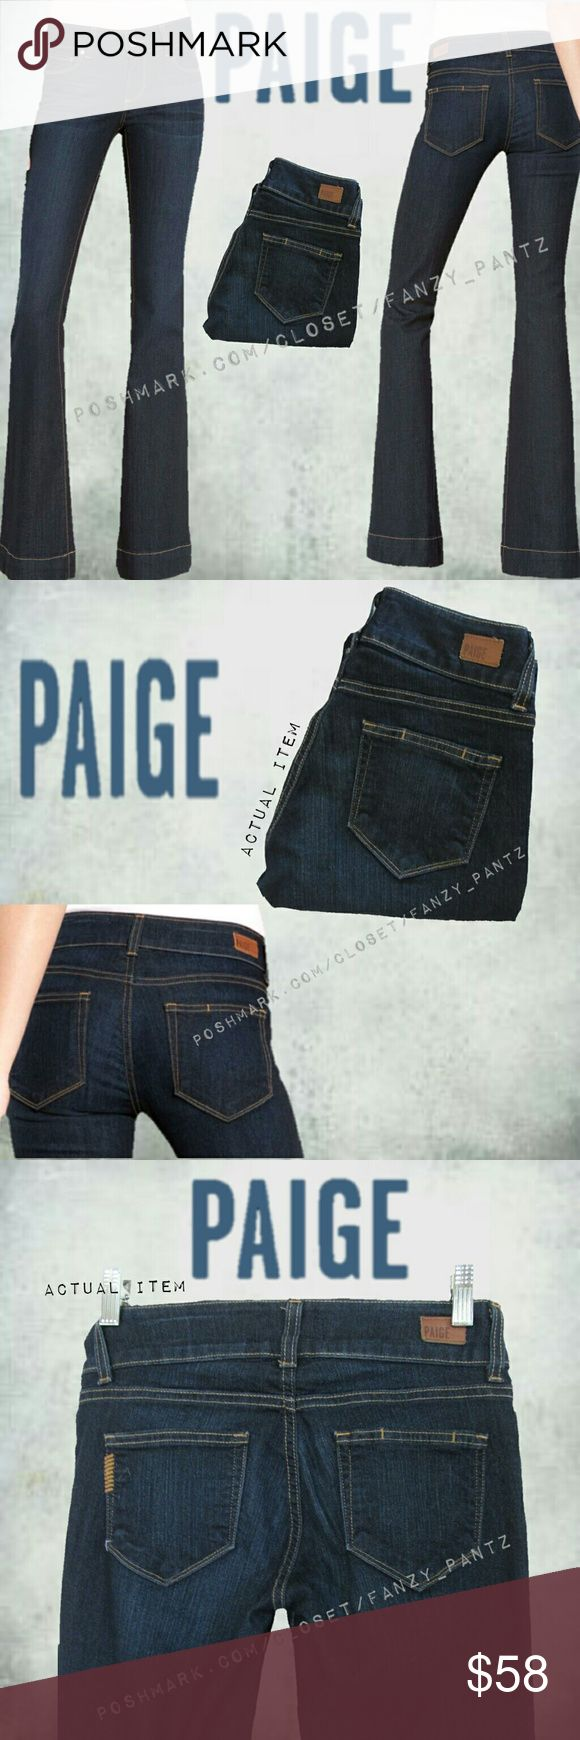 Paige Jem Flare jeans 25 x 31 (petite) NWOT Paige Denim ~ Jem Flare Petite~ stretch ~ mid-rise ~ 'Stream' (dark blue) wash ~ petite fit = 31 inch inseam~ stock photos (shown modeled) are taken from Nordstrom webpage and are identical style/wash. All 'unmodeled' photos are of actual item for sale and taken by me. Measurements and other item specifics can be found in photo 6.  ABSOLUTELY NO TRADES PLEASE  REASONABLE OFFERS WELCOME THROUGH OFFER FEATURE PAIGE Jeans Flare & Wide Leg